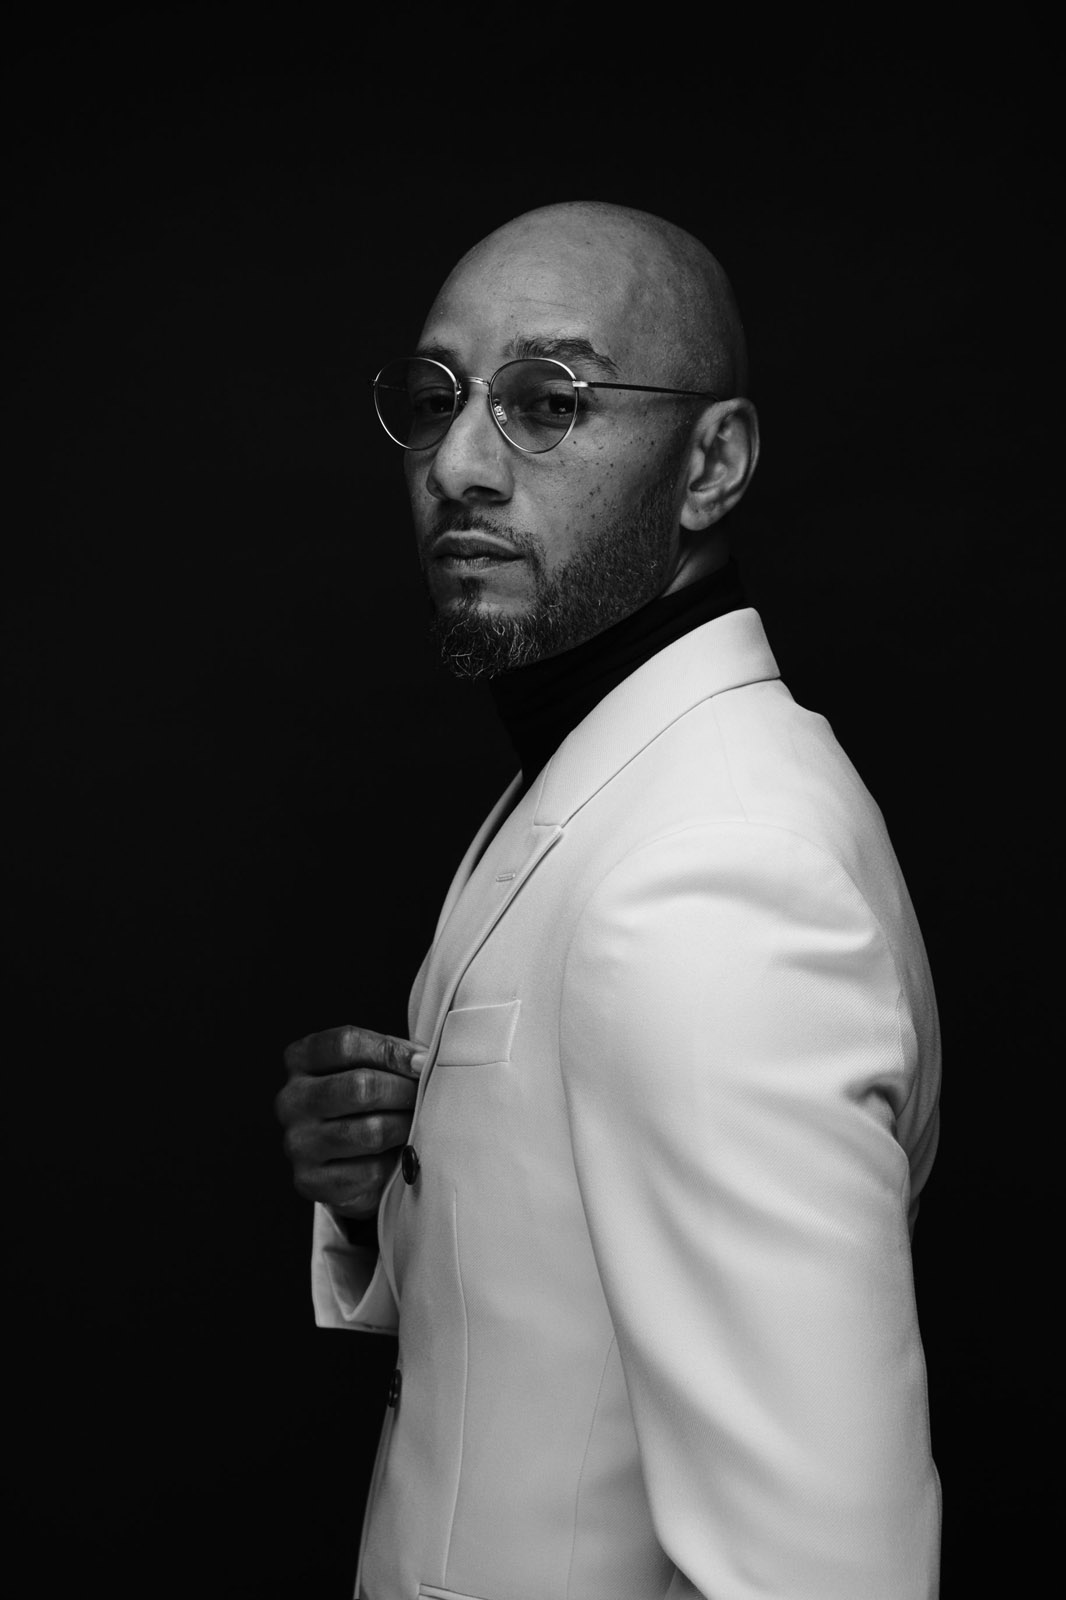 Spirit-&-Flesh-Magazine_Swizz-Beatz_Real_by_Nigel-Parry_03